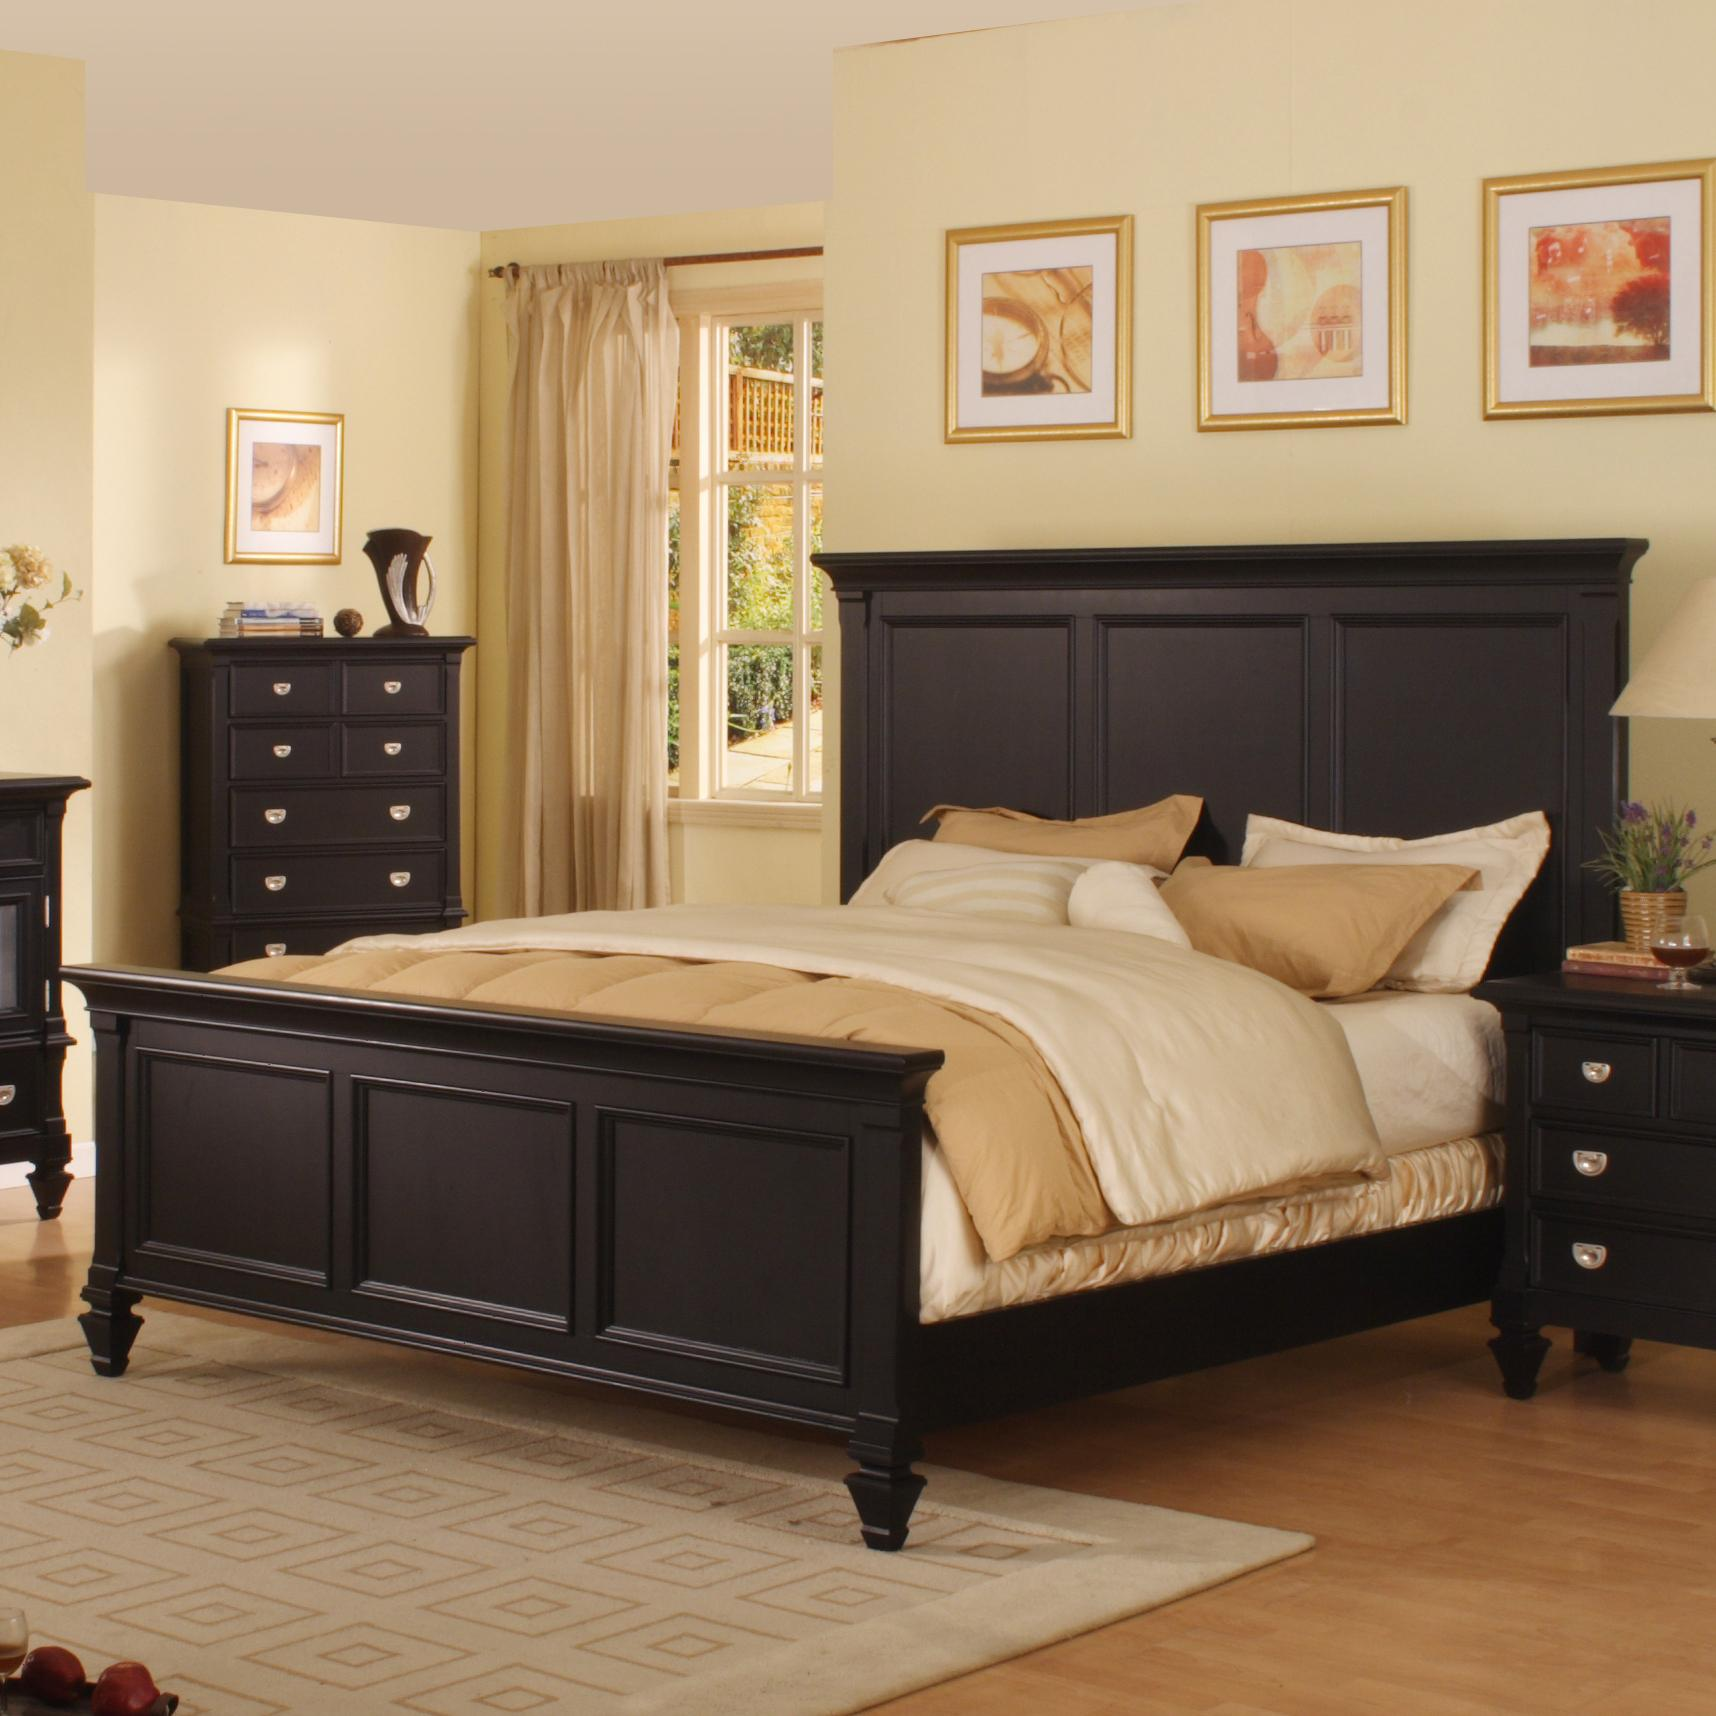 Surrey Queen Panel Bed | Morris Home | Panel Beds